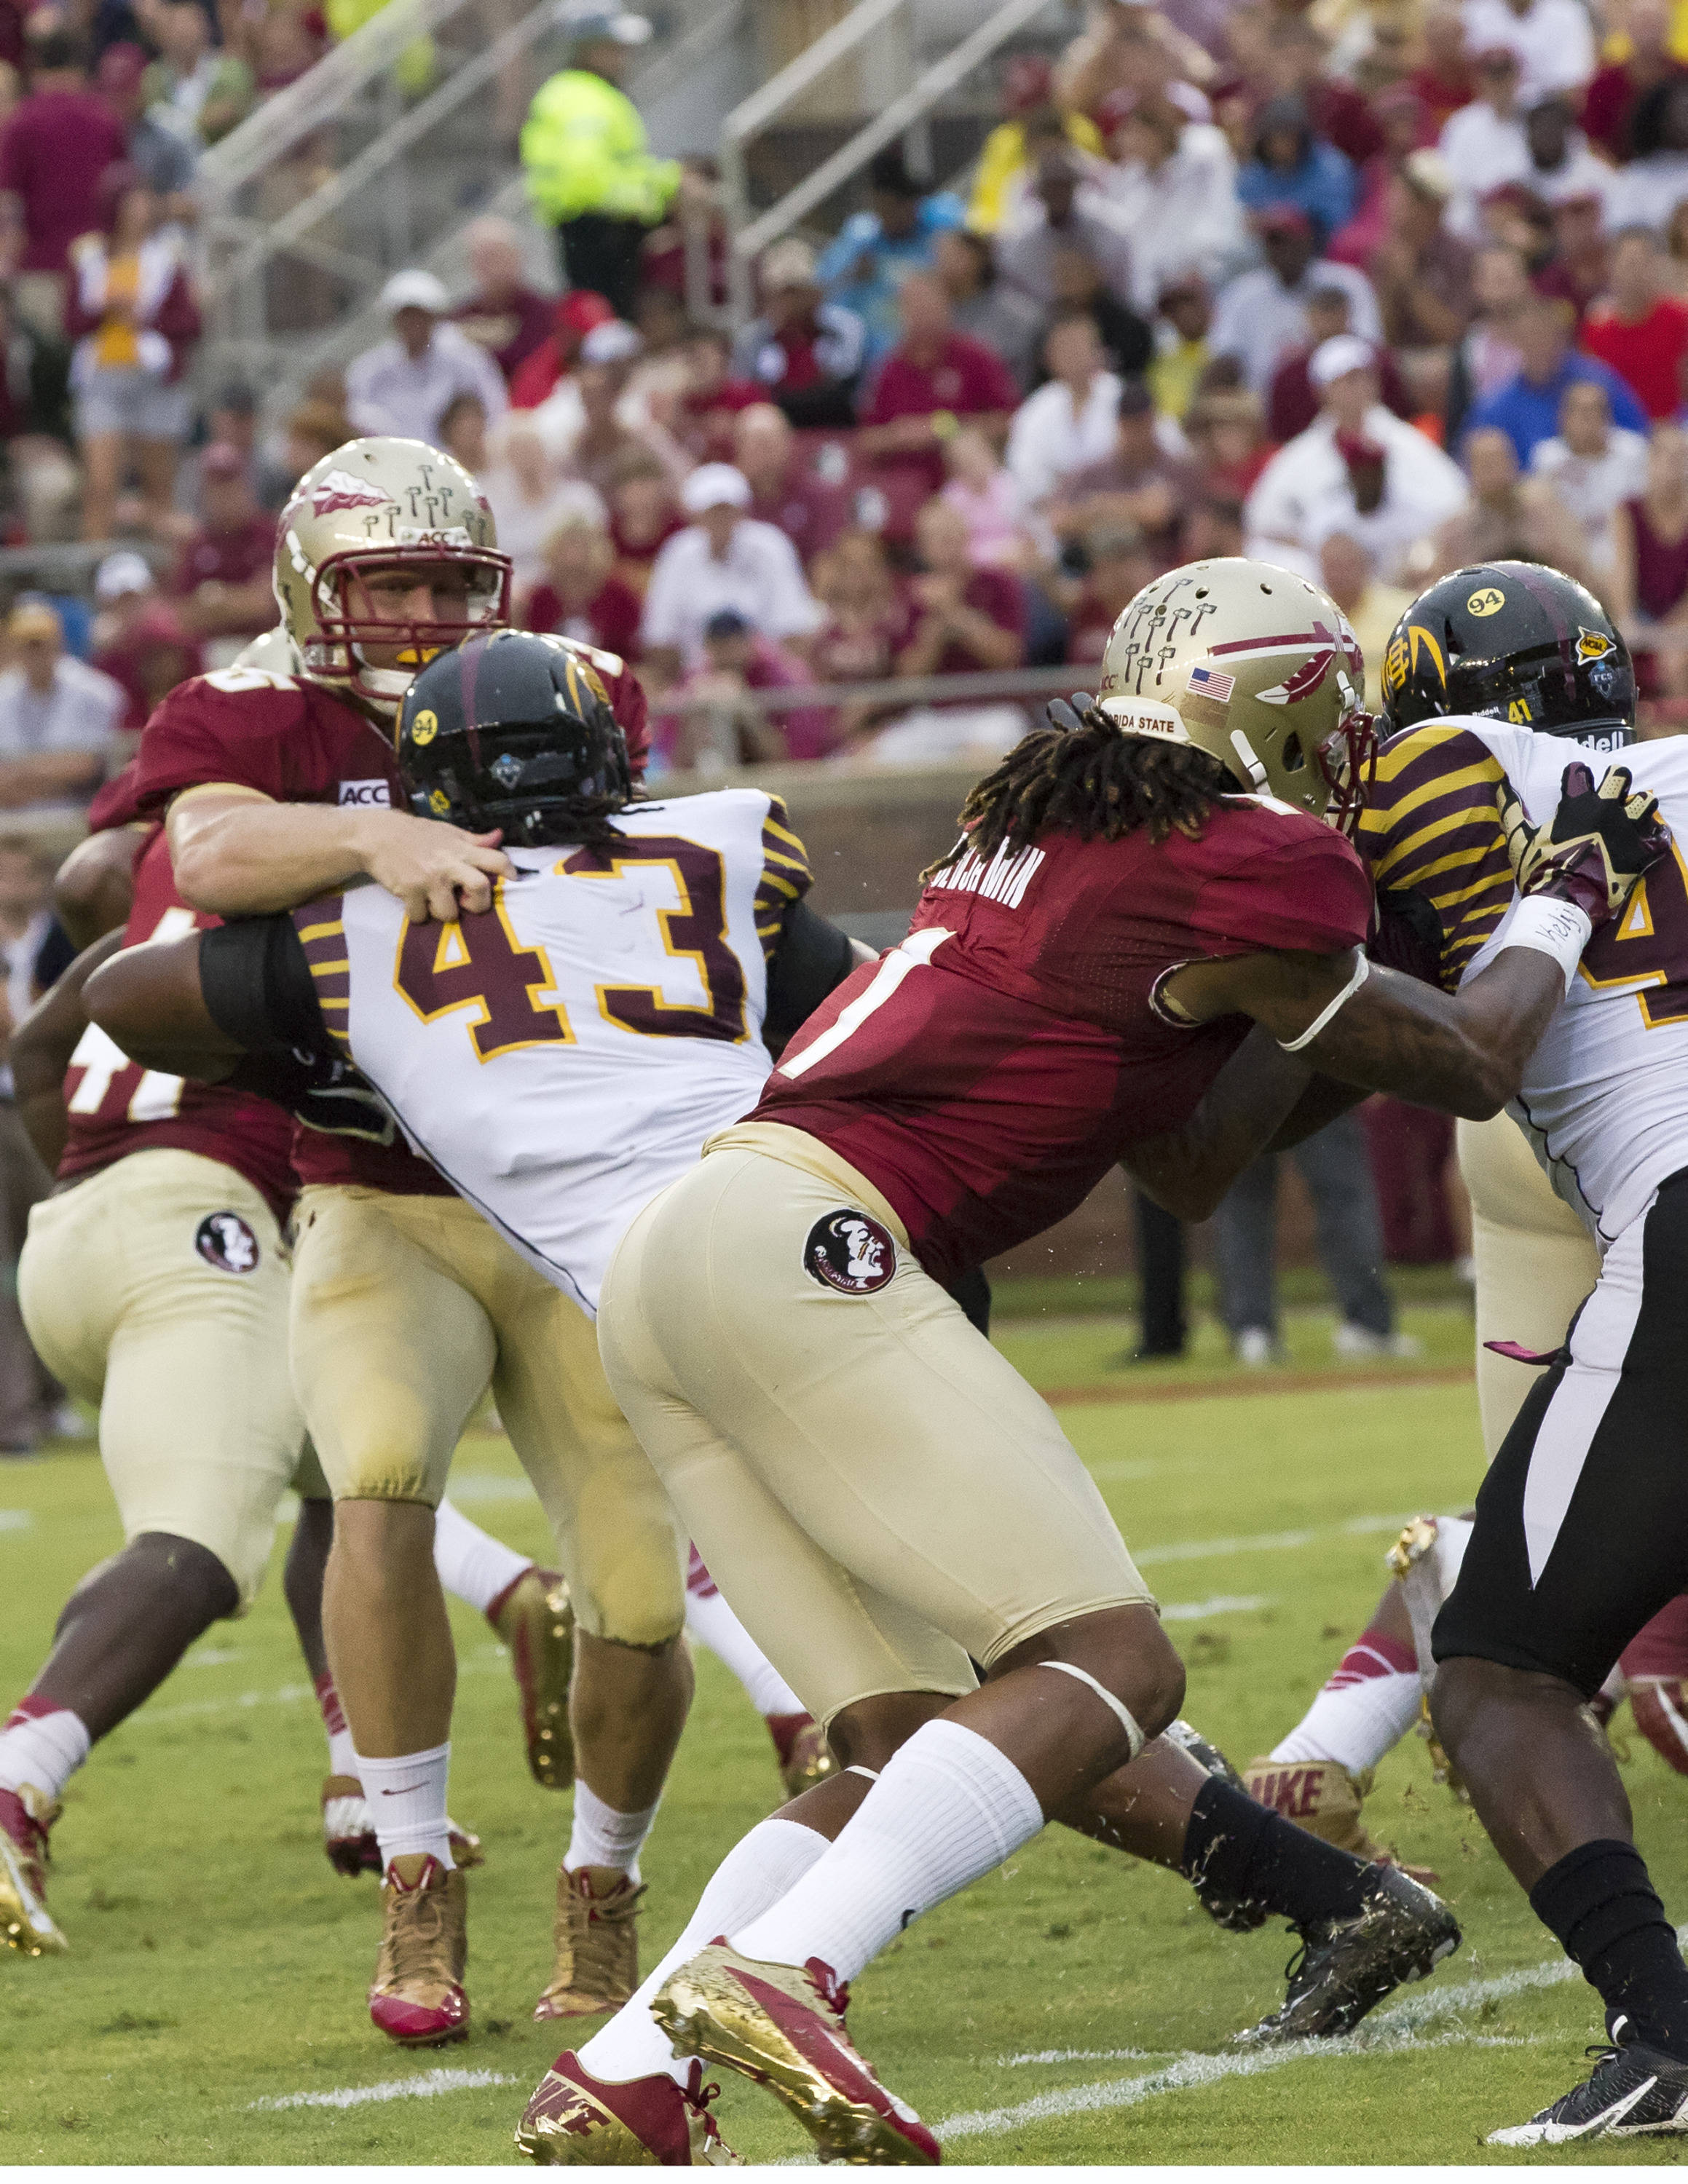 Nick O'Leary (35), Kelvin Benjamin (1), FSU vs Bethune-Cookman,  9-21-13, (Photo by Steve Musco)